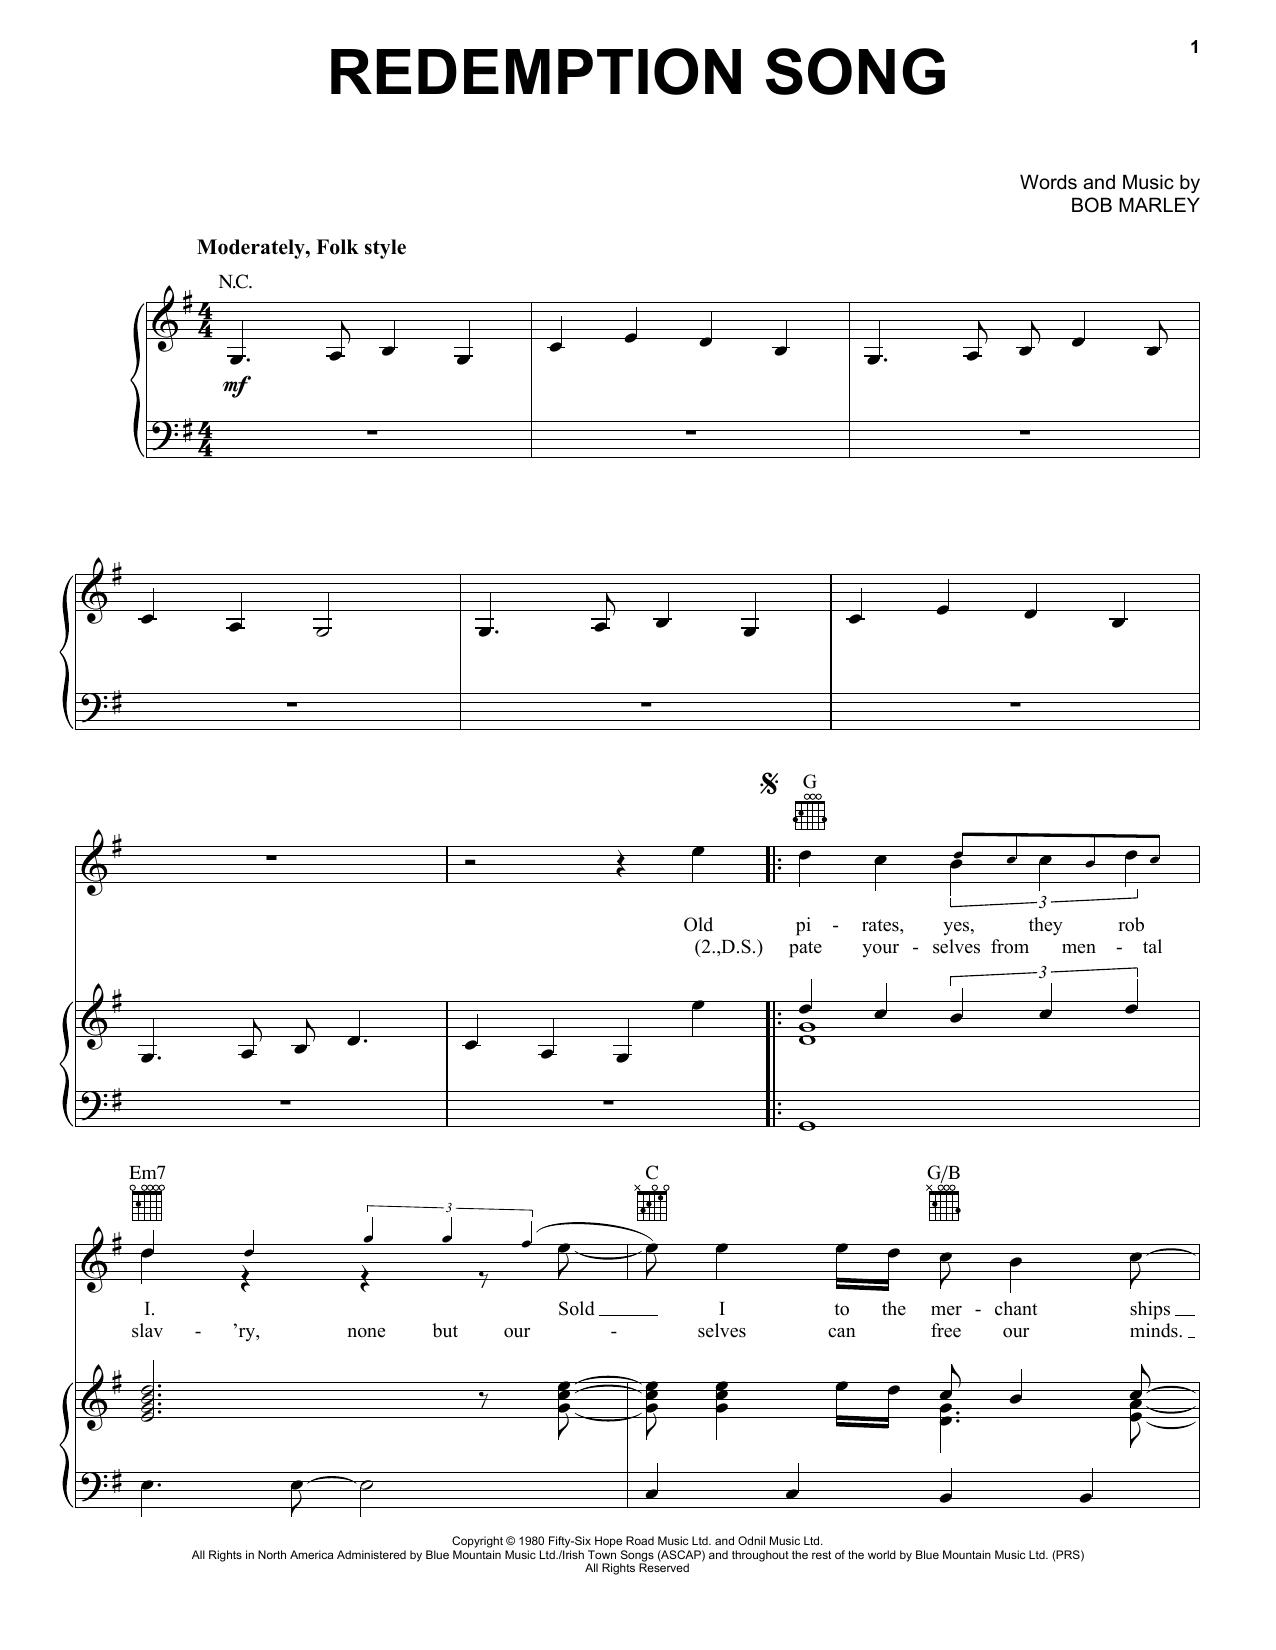 Bob Marley Redemption Song Sheet Music Notes Chords Printable